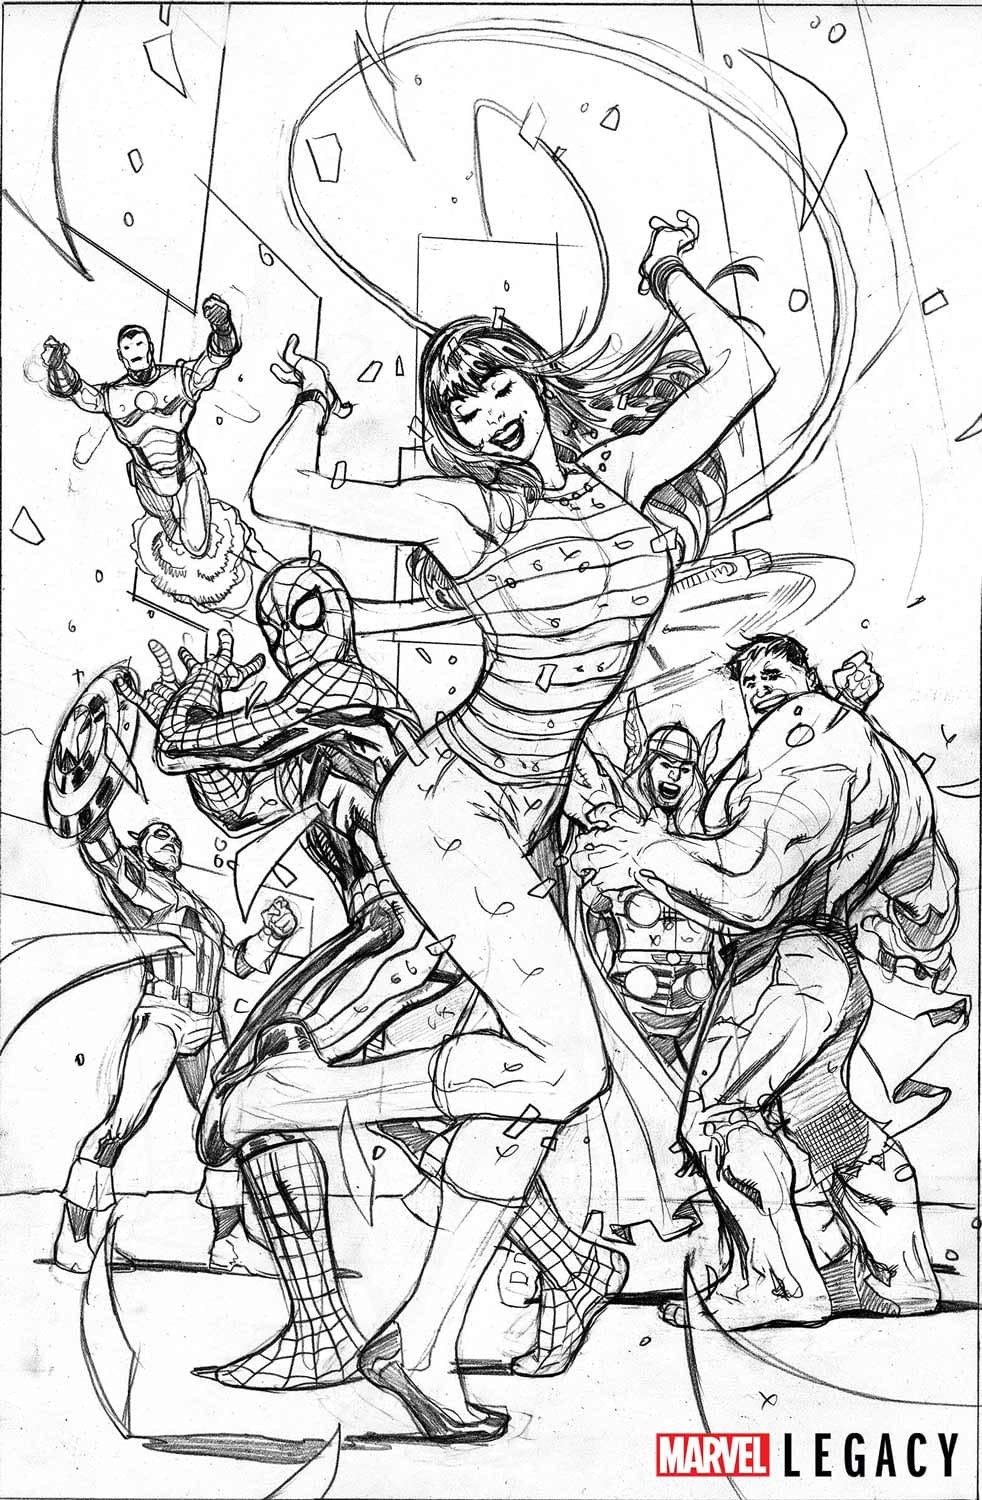 Ain't No Party Like A Marvel Legacy Party, 'Cause A Marvel Legacy Party Don't Stop